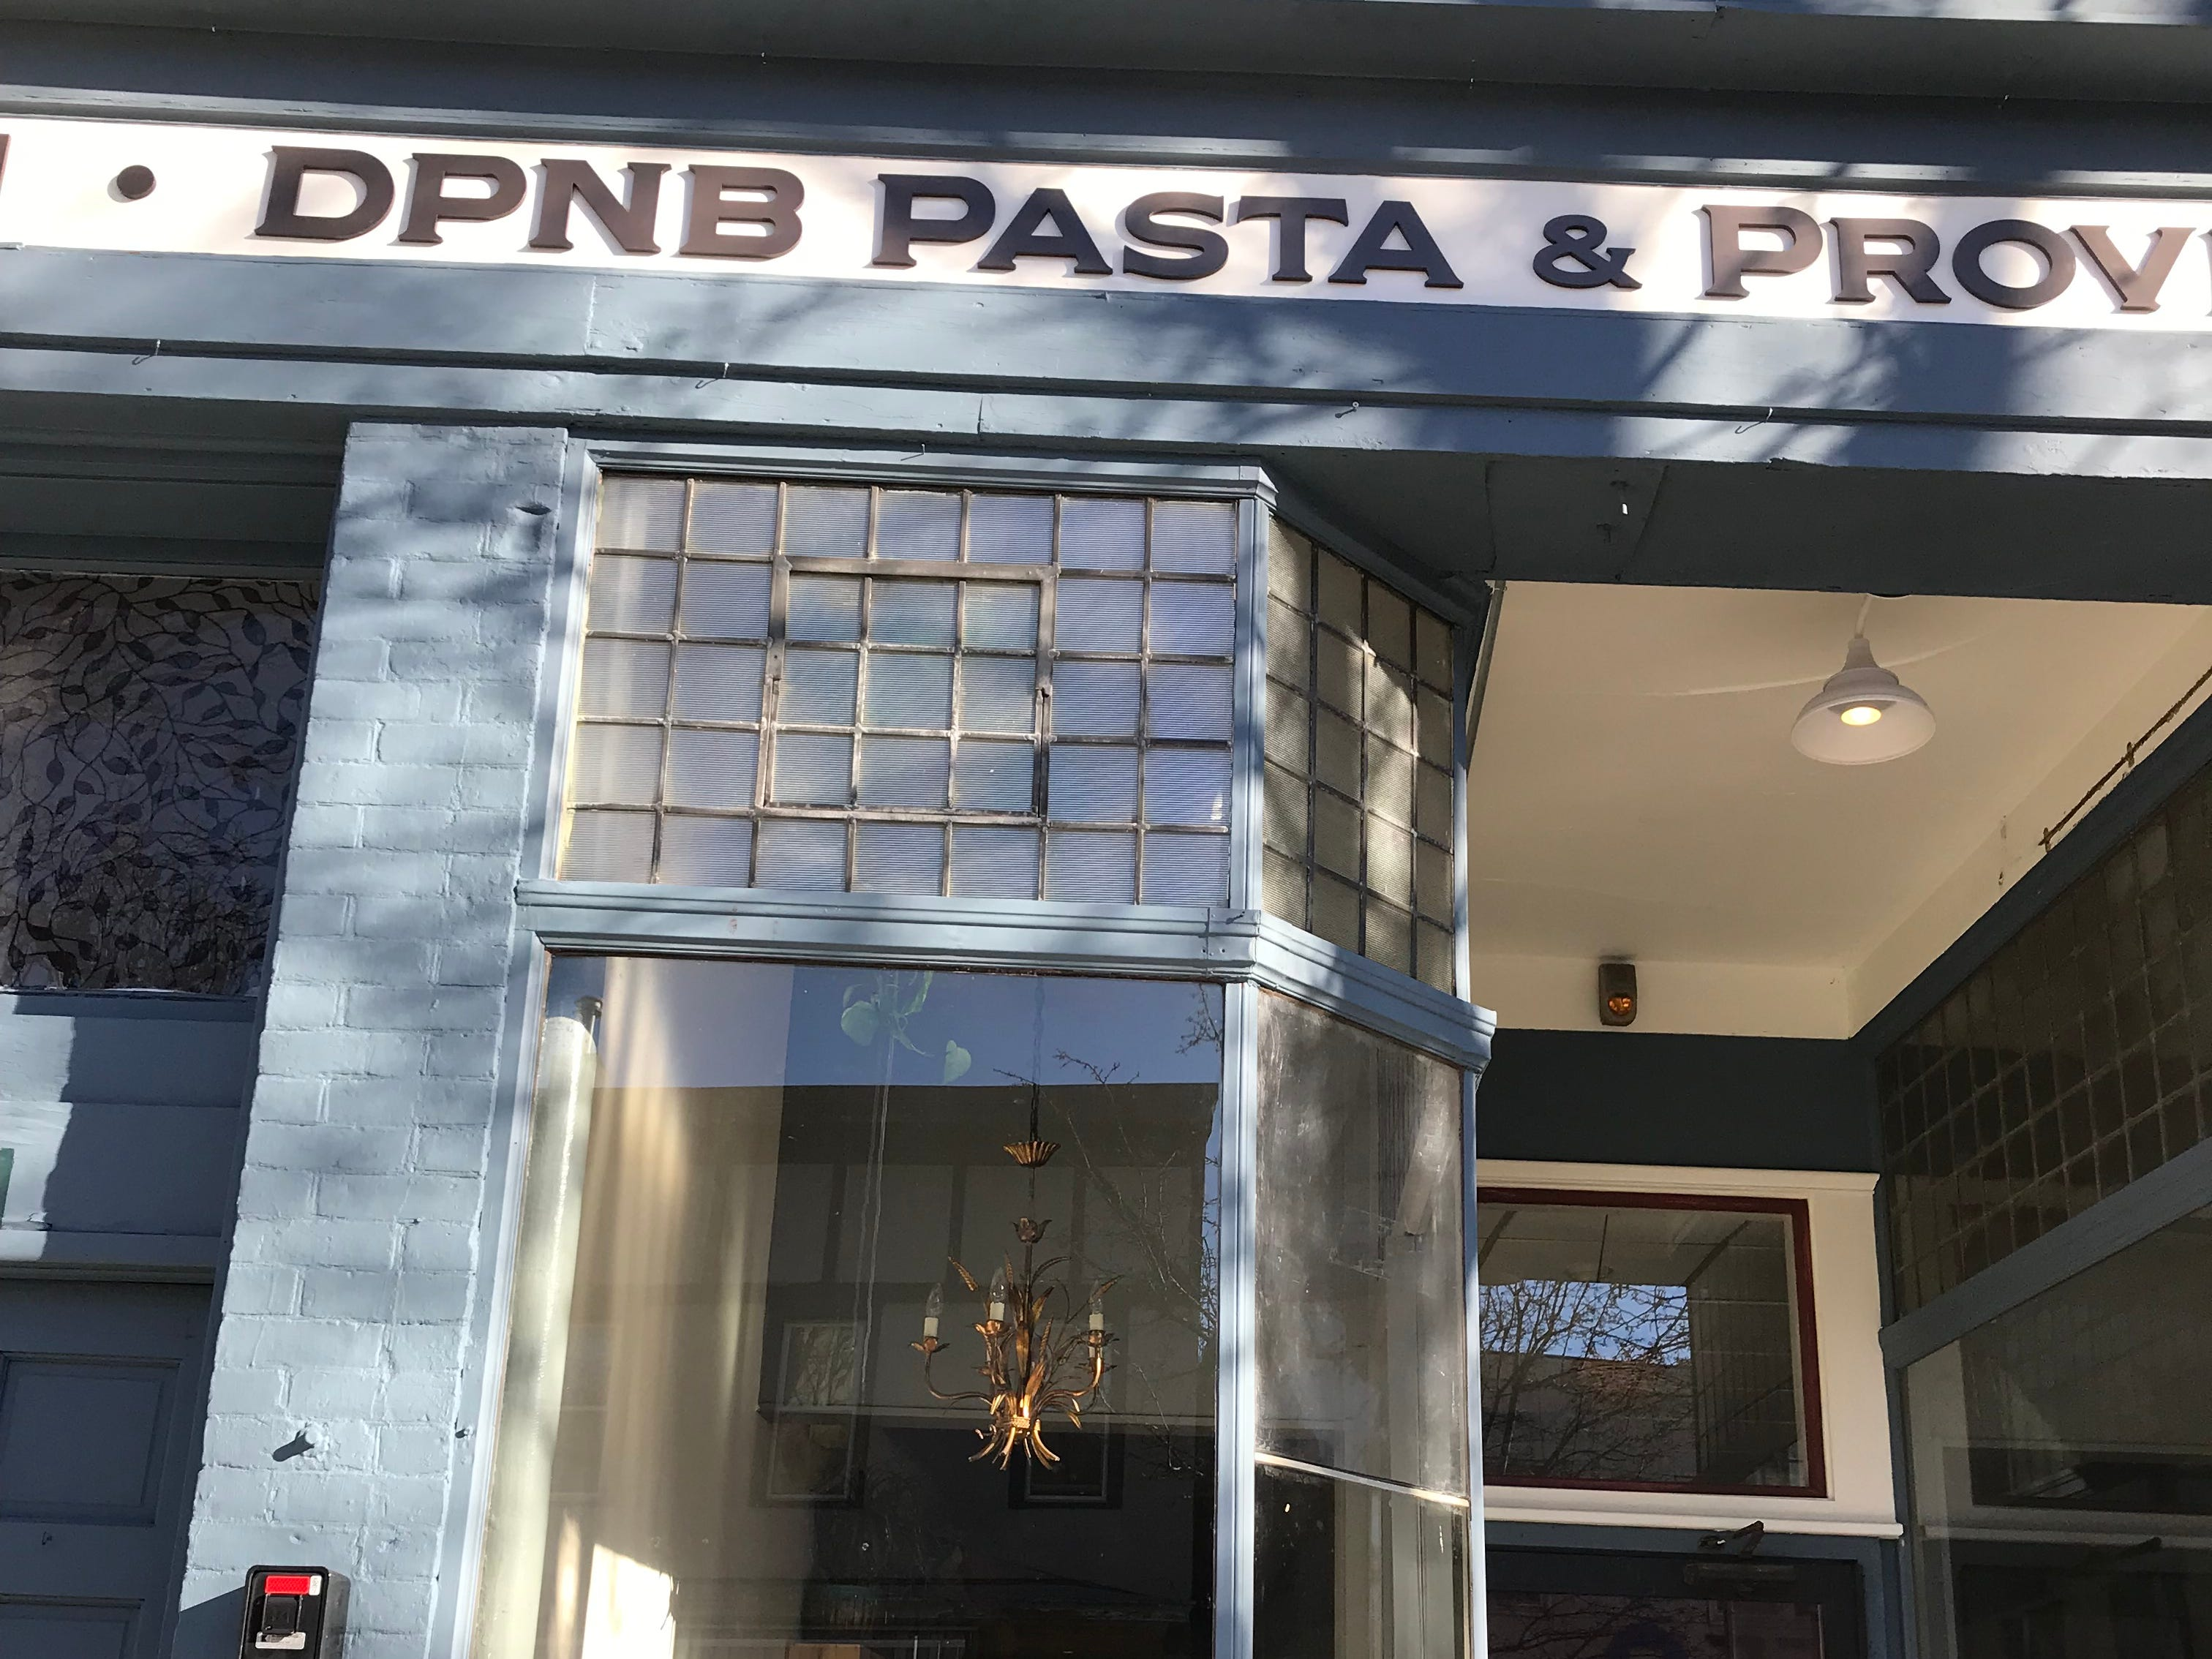 The exterior of DPNB Pasta & Provisions in Nyack. Photographed January 31, 2019.